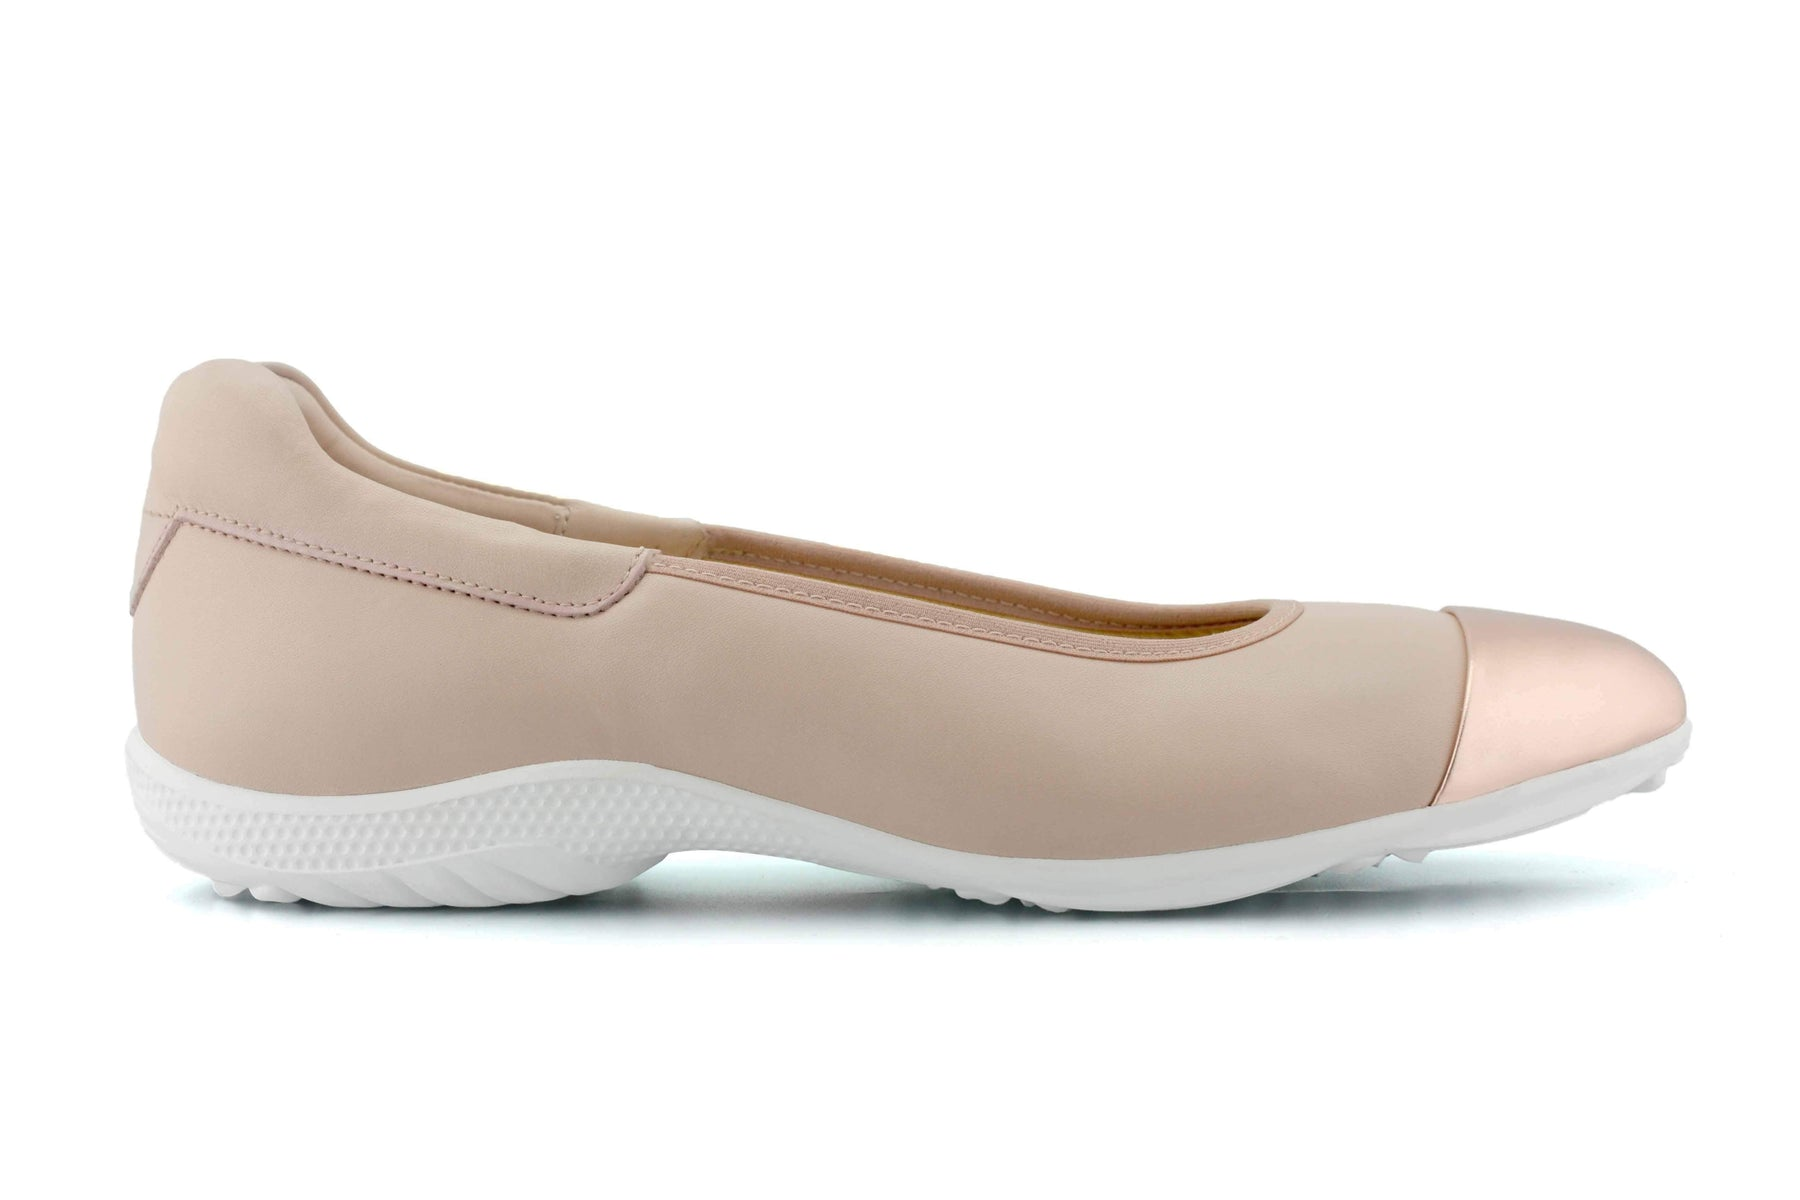 Ladies Golf Shoes | Runway Rose | Royal Albartross Runway Rose WB-RNRS-UK07-US09